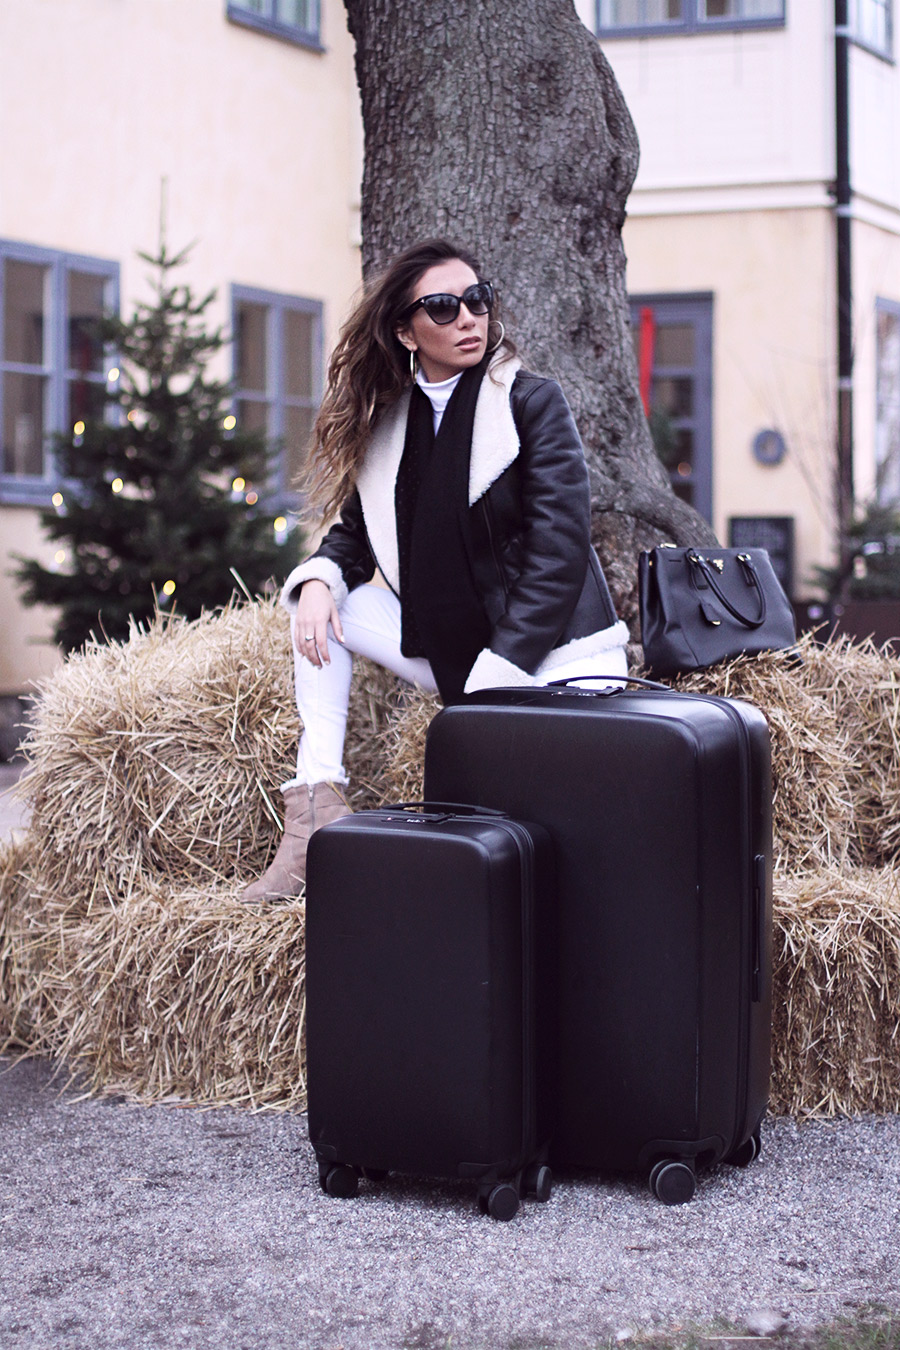 Blogger review on Raden suitcases. A50 set in matte black